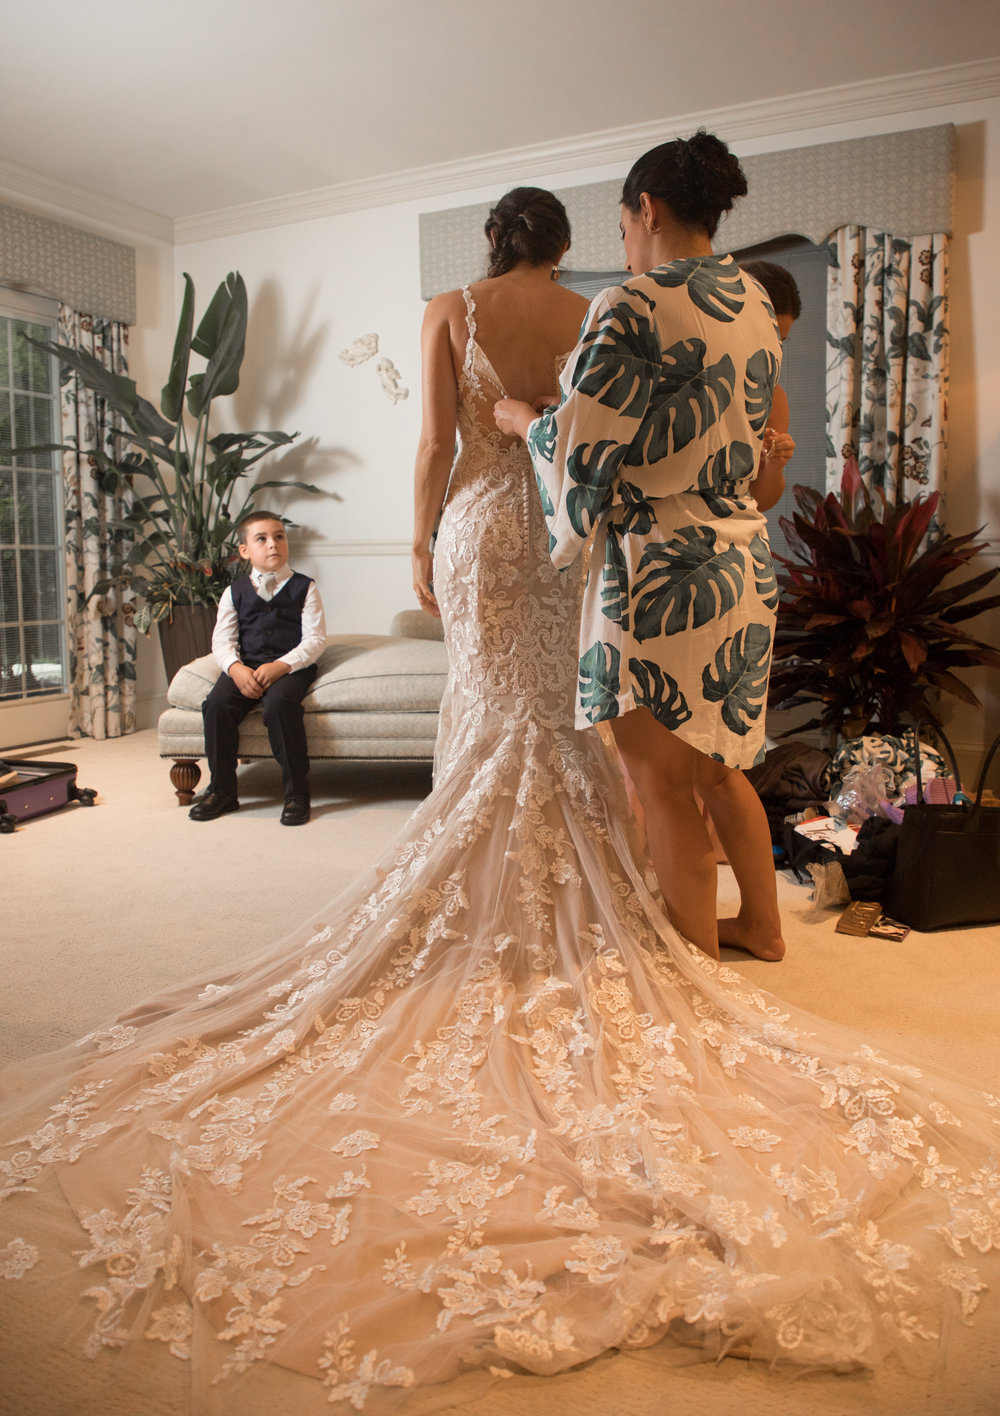 The ring bearer looks admiringly at the bride as her maid of honor buttons the back of her stunning wedding gown.